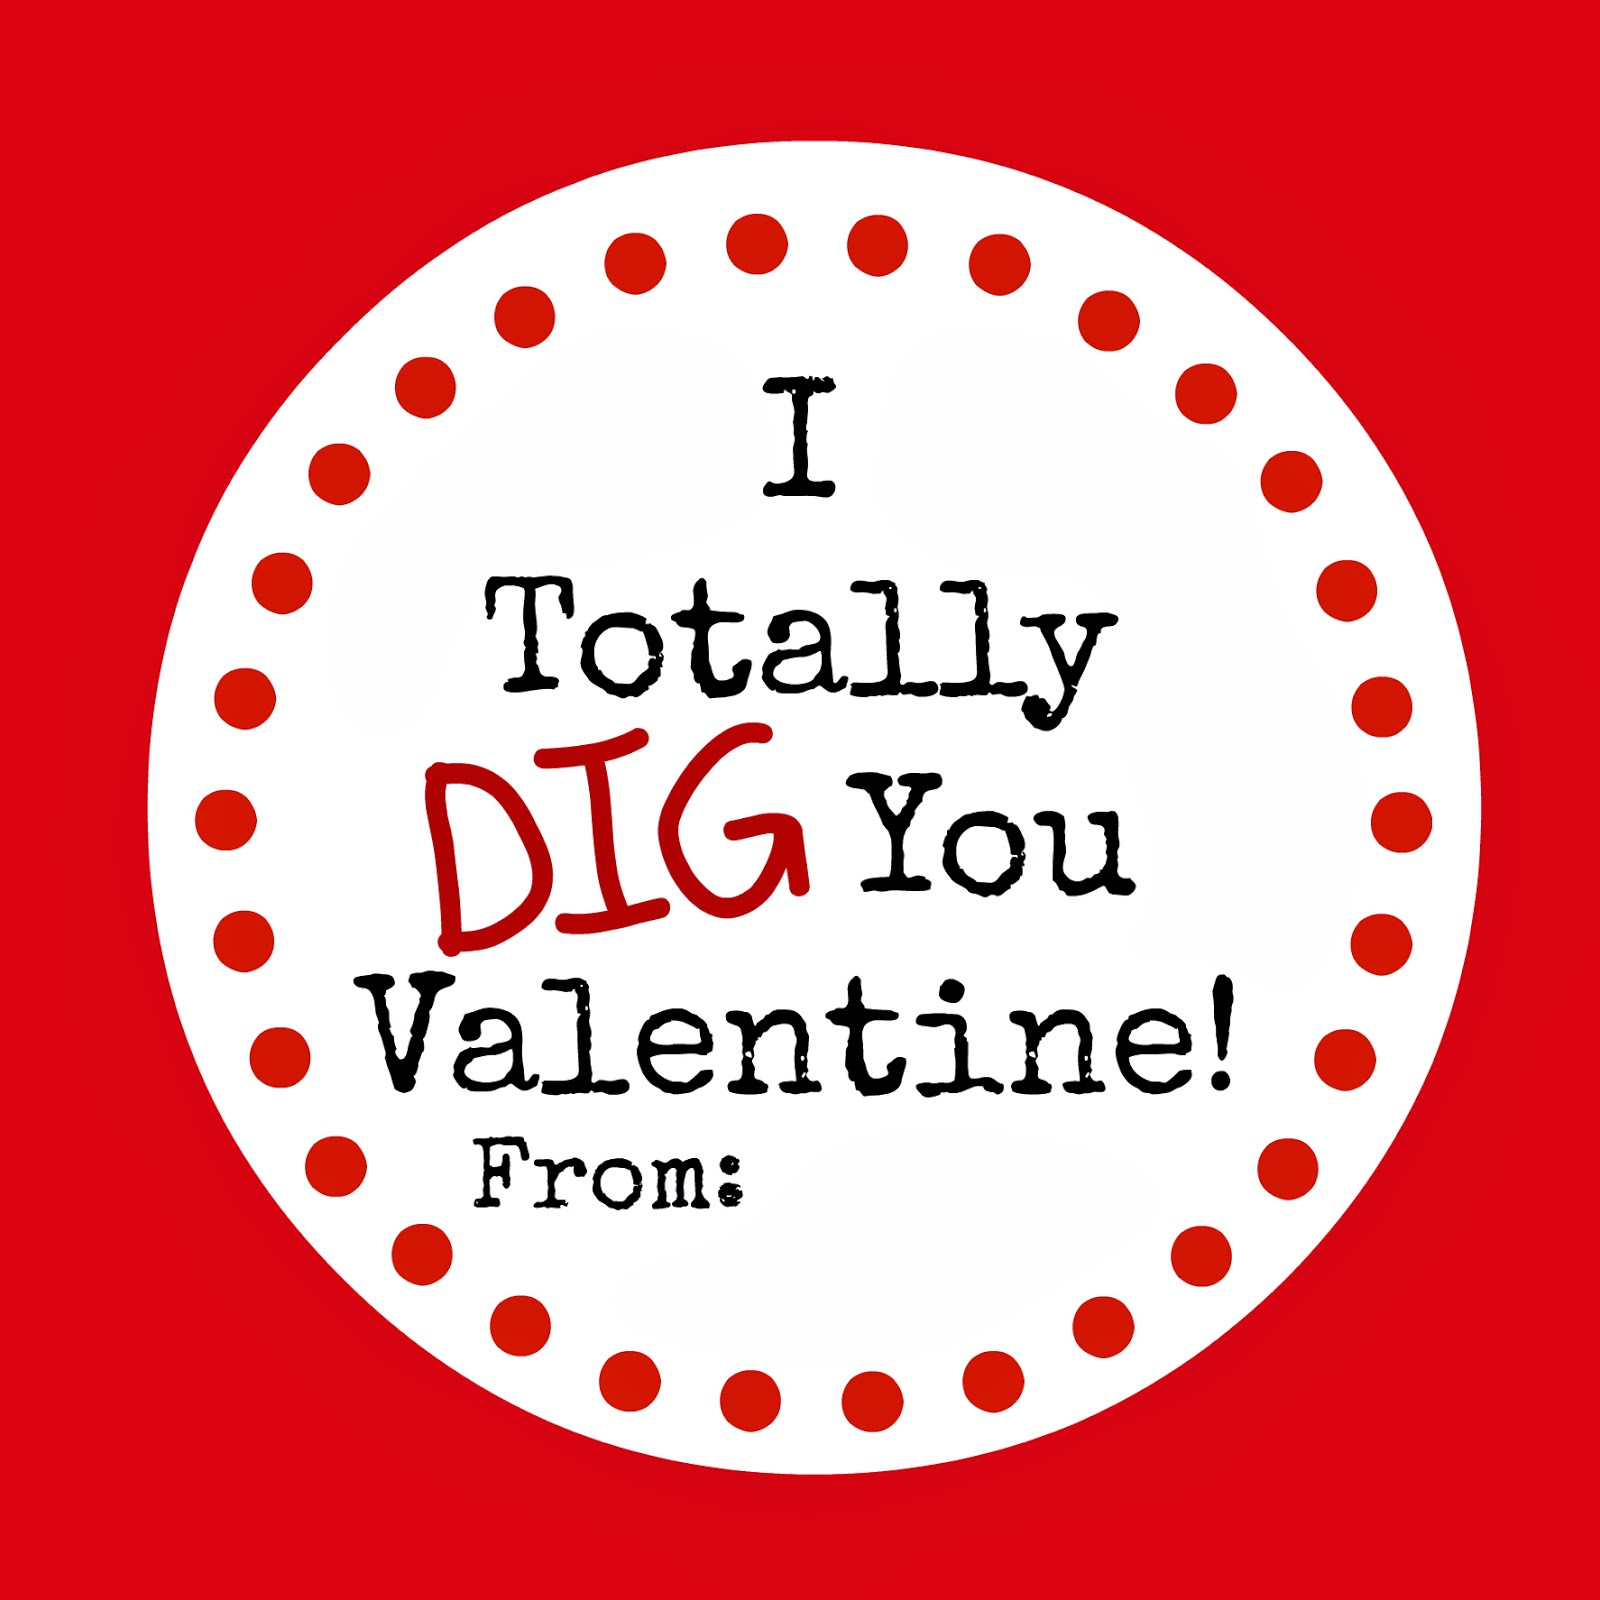 I Dig You Valentine Printable by whatdoesthecoxsay.com #printable #tutorial